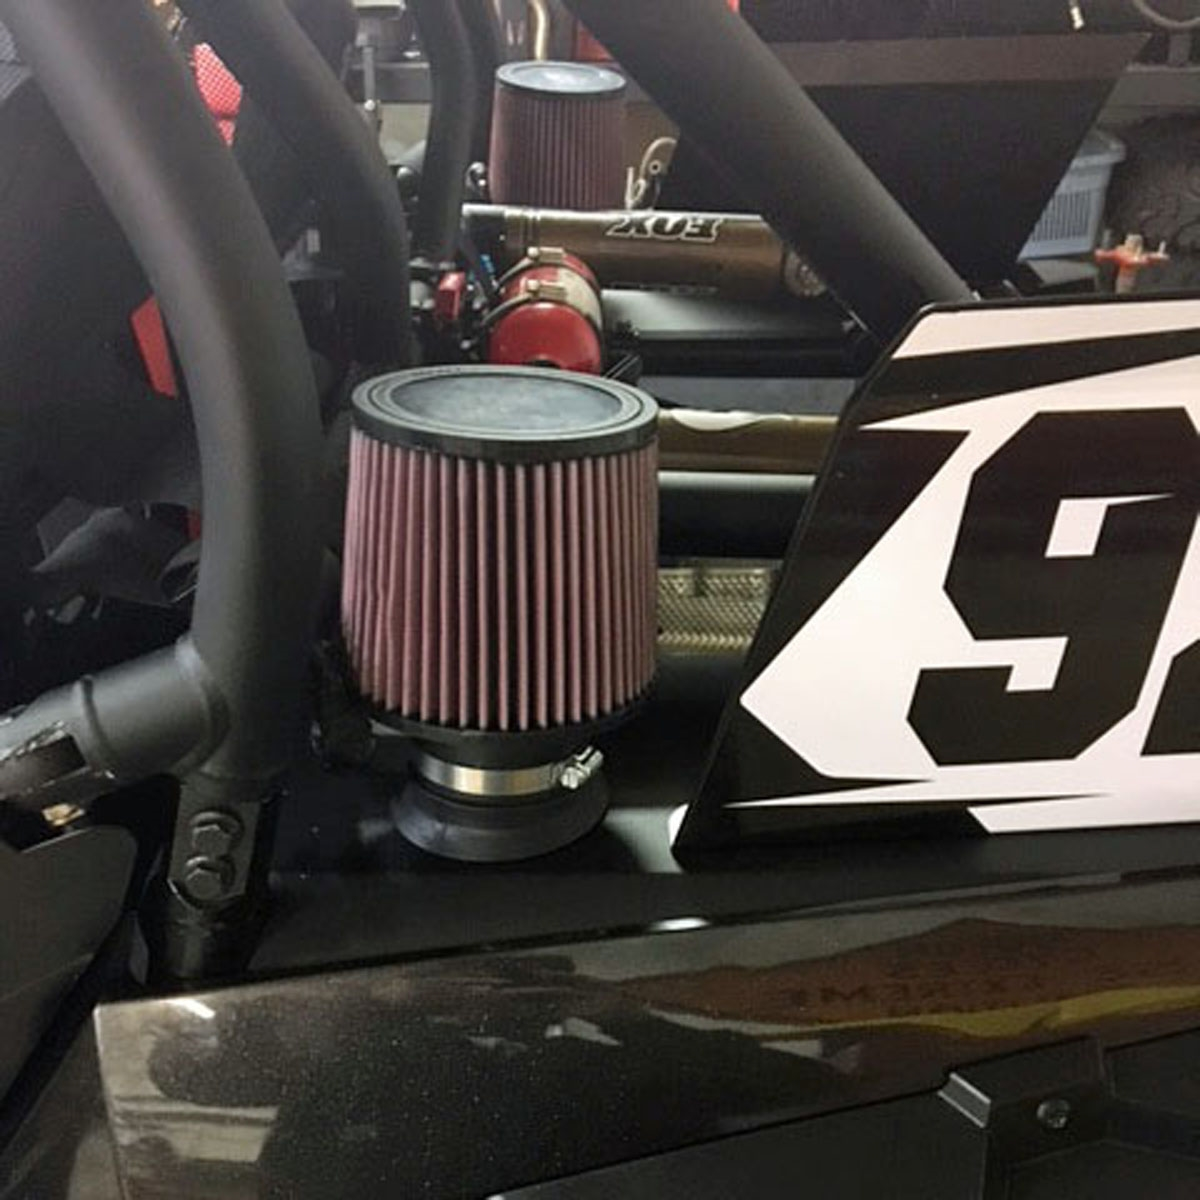 hight resolution of polaris rzr xp 1000 turbo velocity intake system air filter stack our